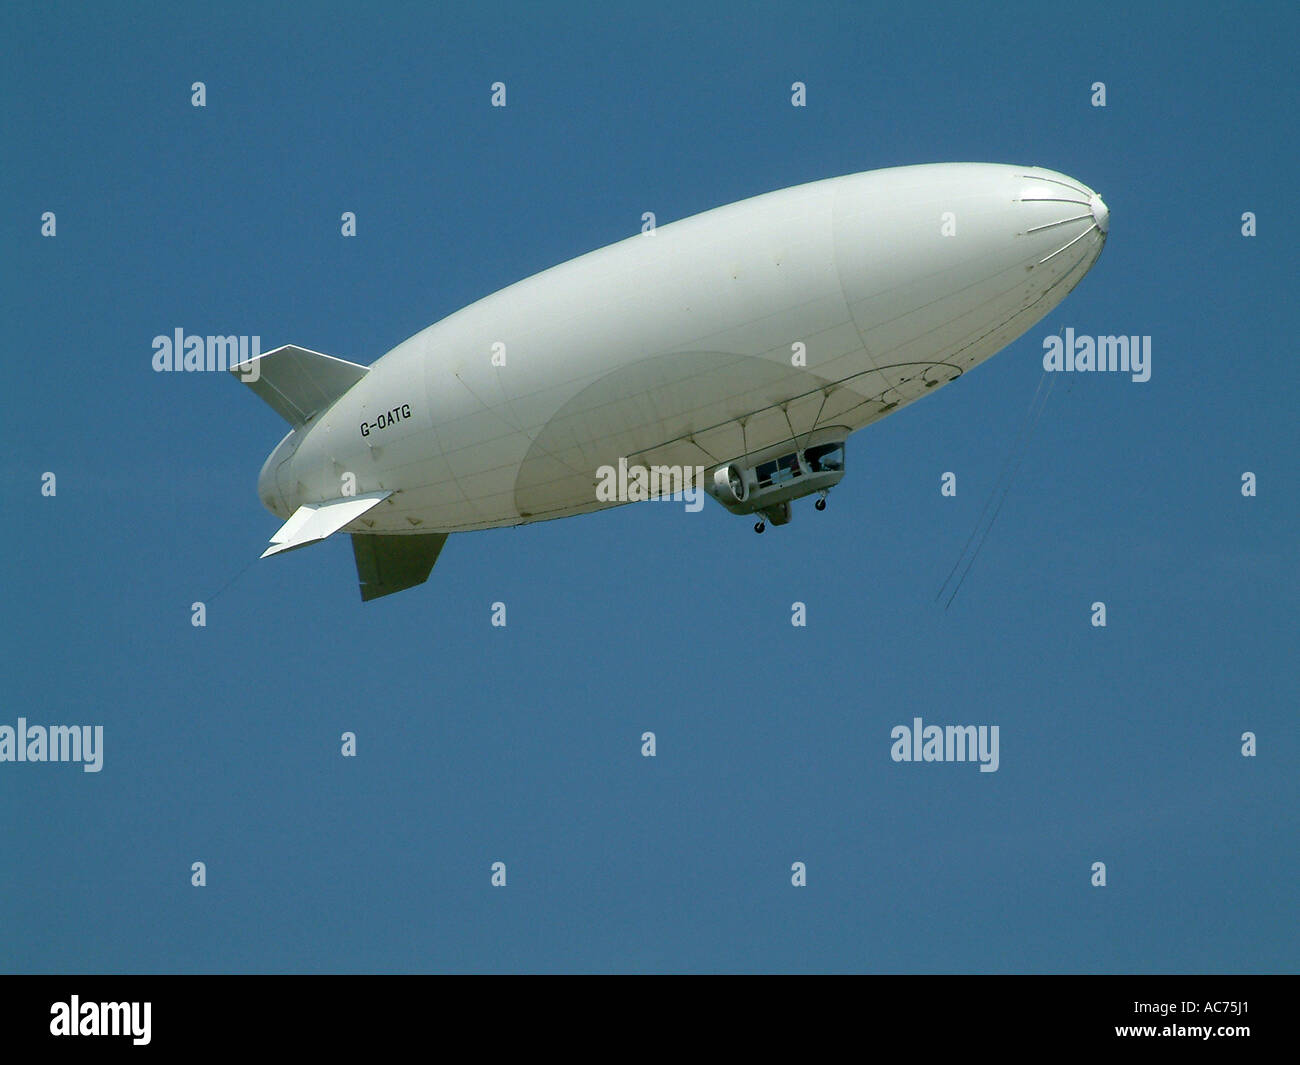 airship flying in clear blue sky Stock Photo